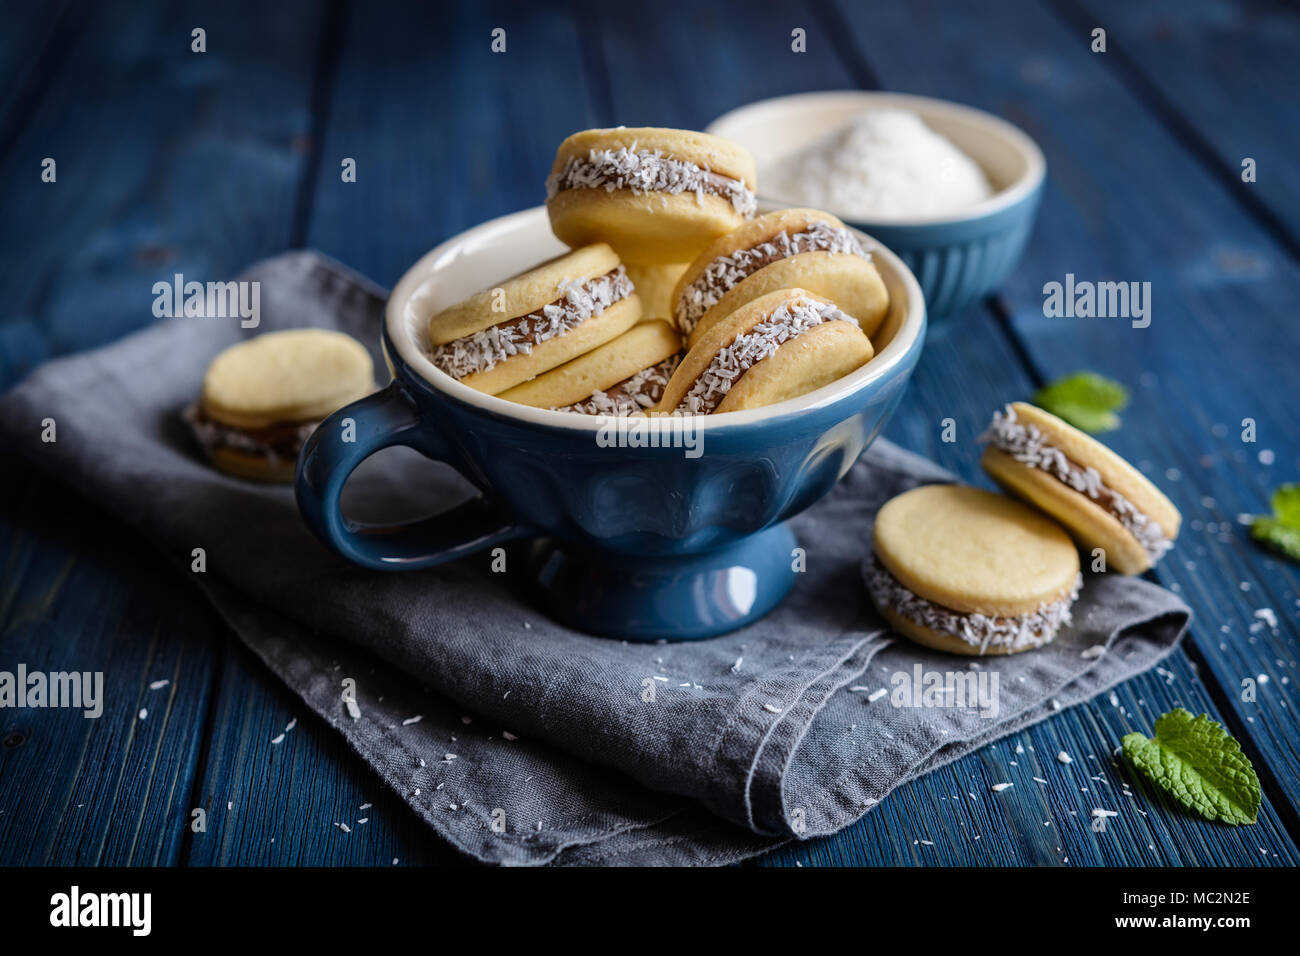 Alfajores - traditional sandwich cookies filled with caramelized milk and coconut - Stock Image